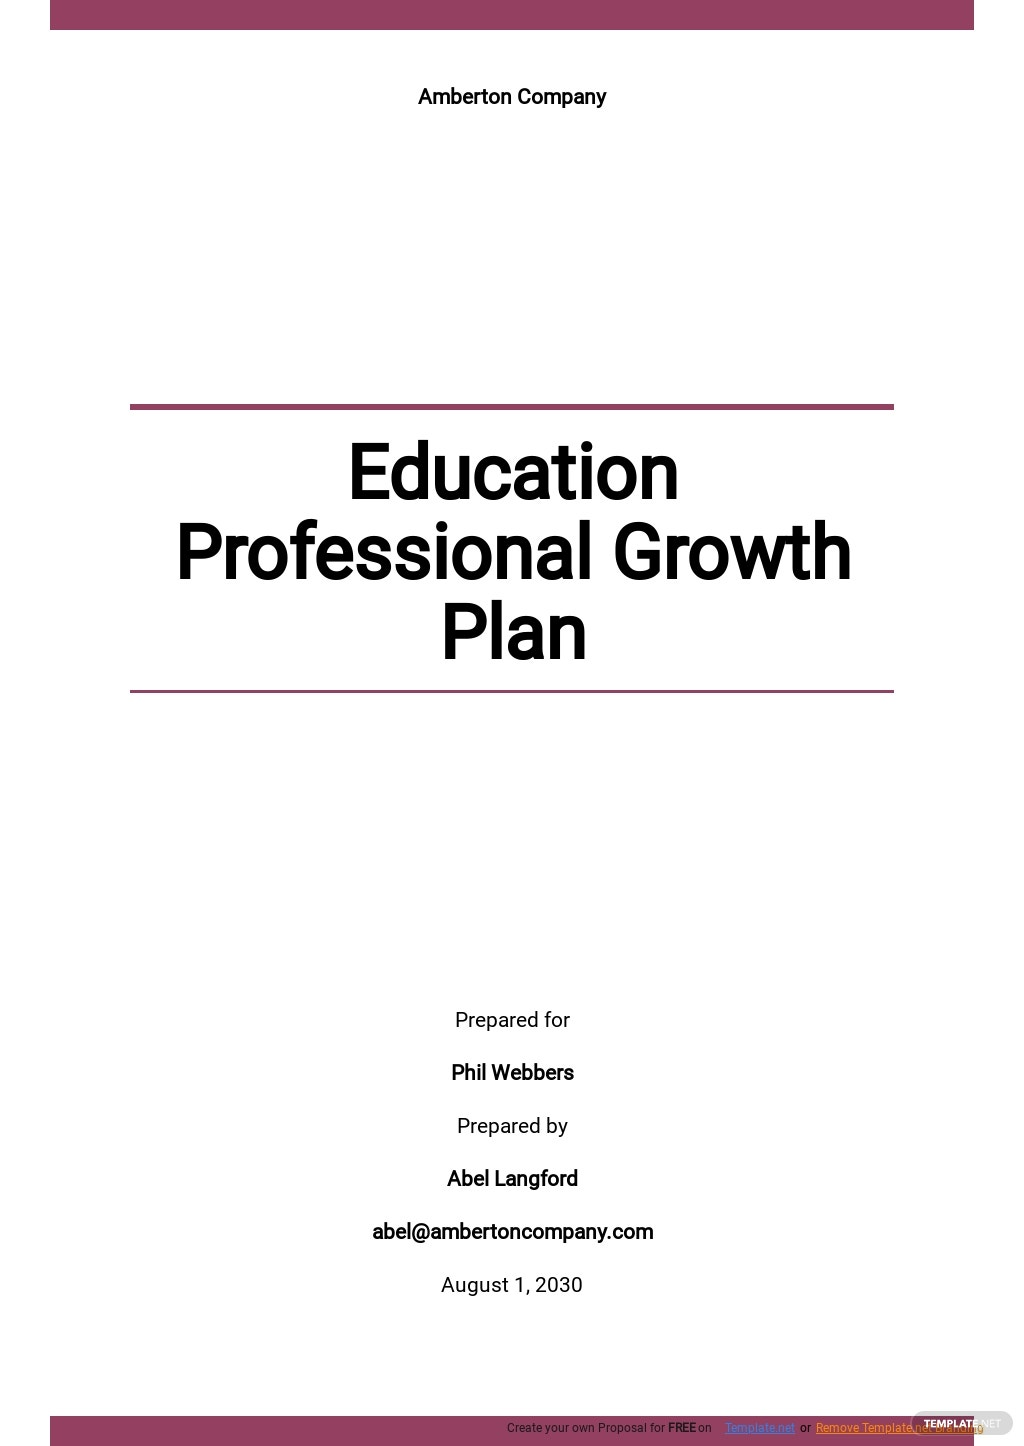 Education Professional Growth Plan Template.jpe